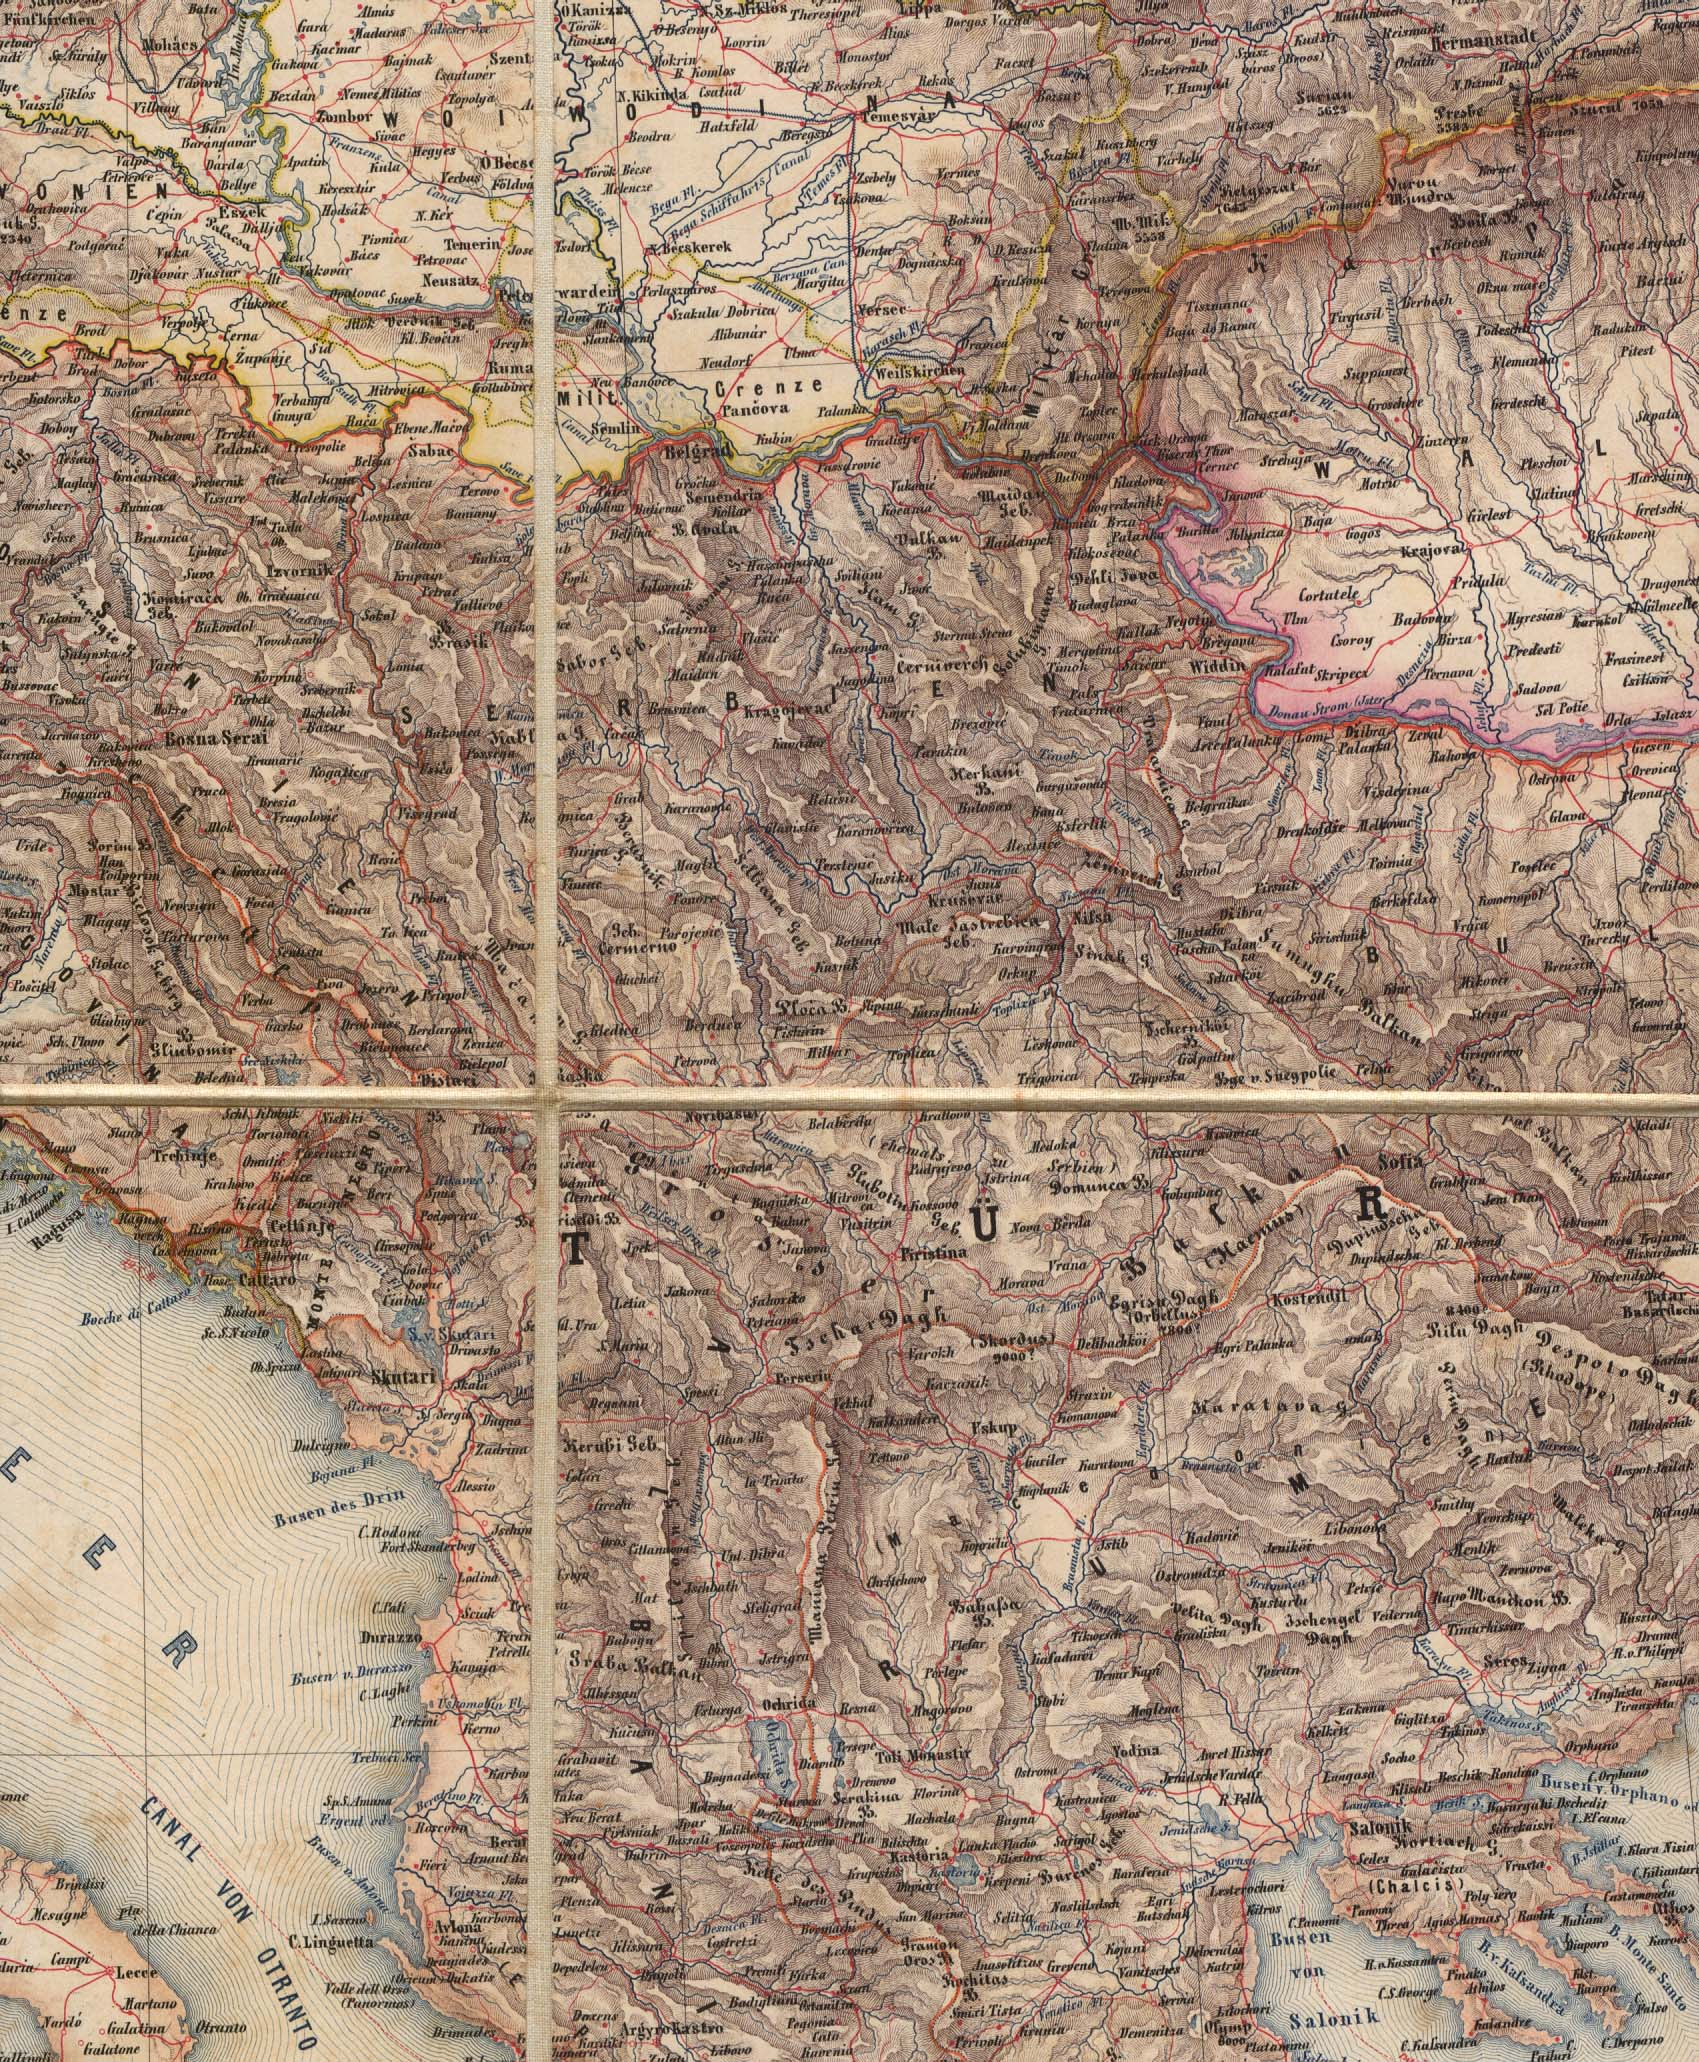 Historical: The Balkans Historical Maps